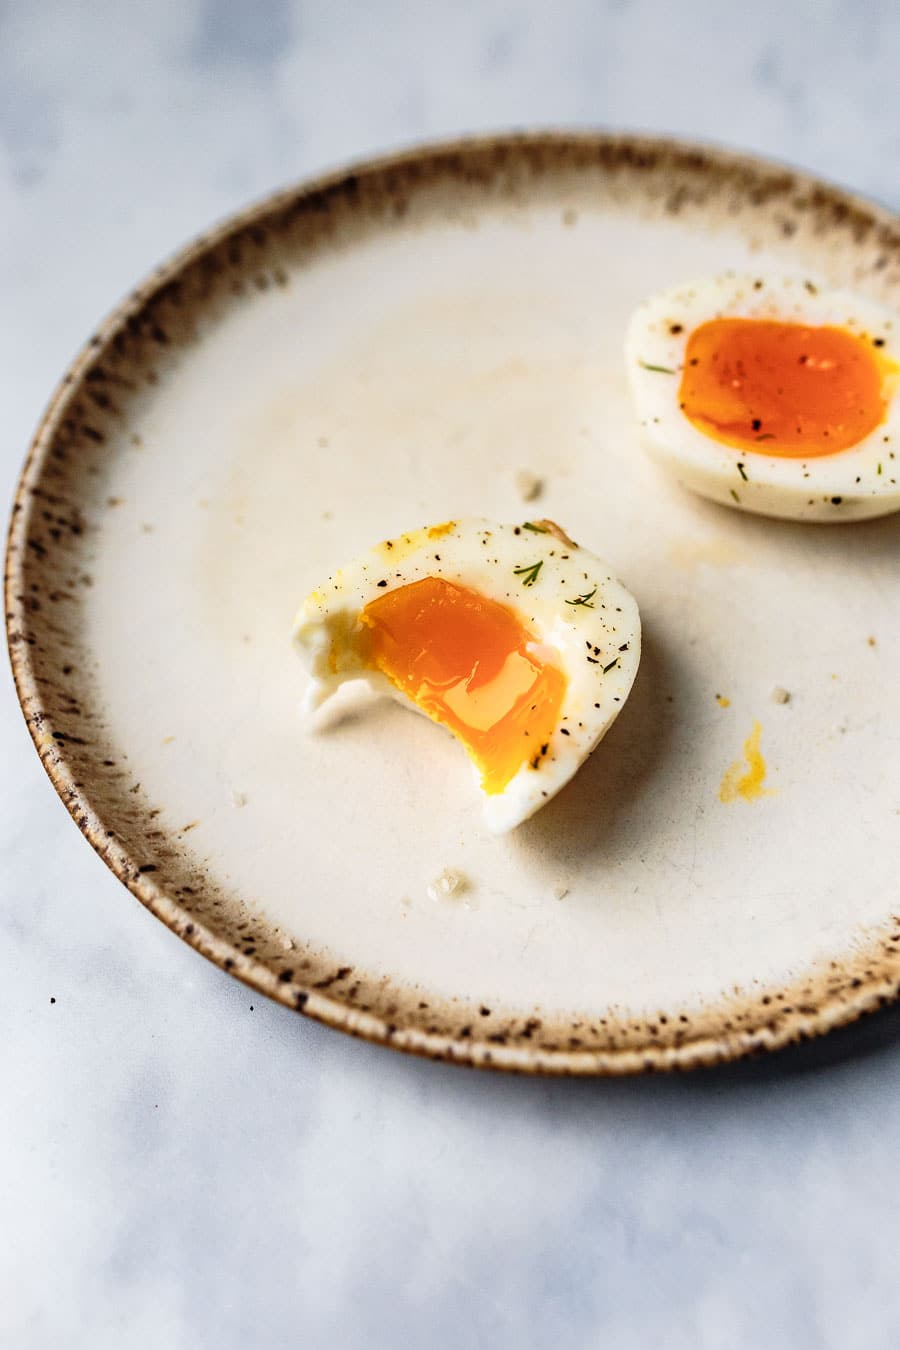 three jammy boiled eggs halved and resting on a stoneware place topped with salt and pepper and a bite taken out of one of them